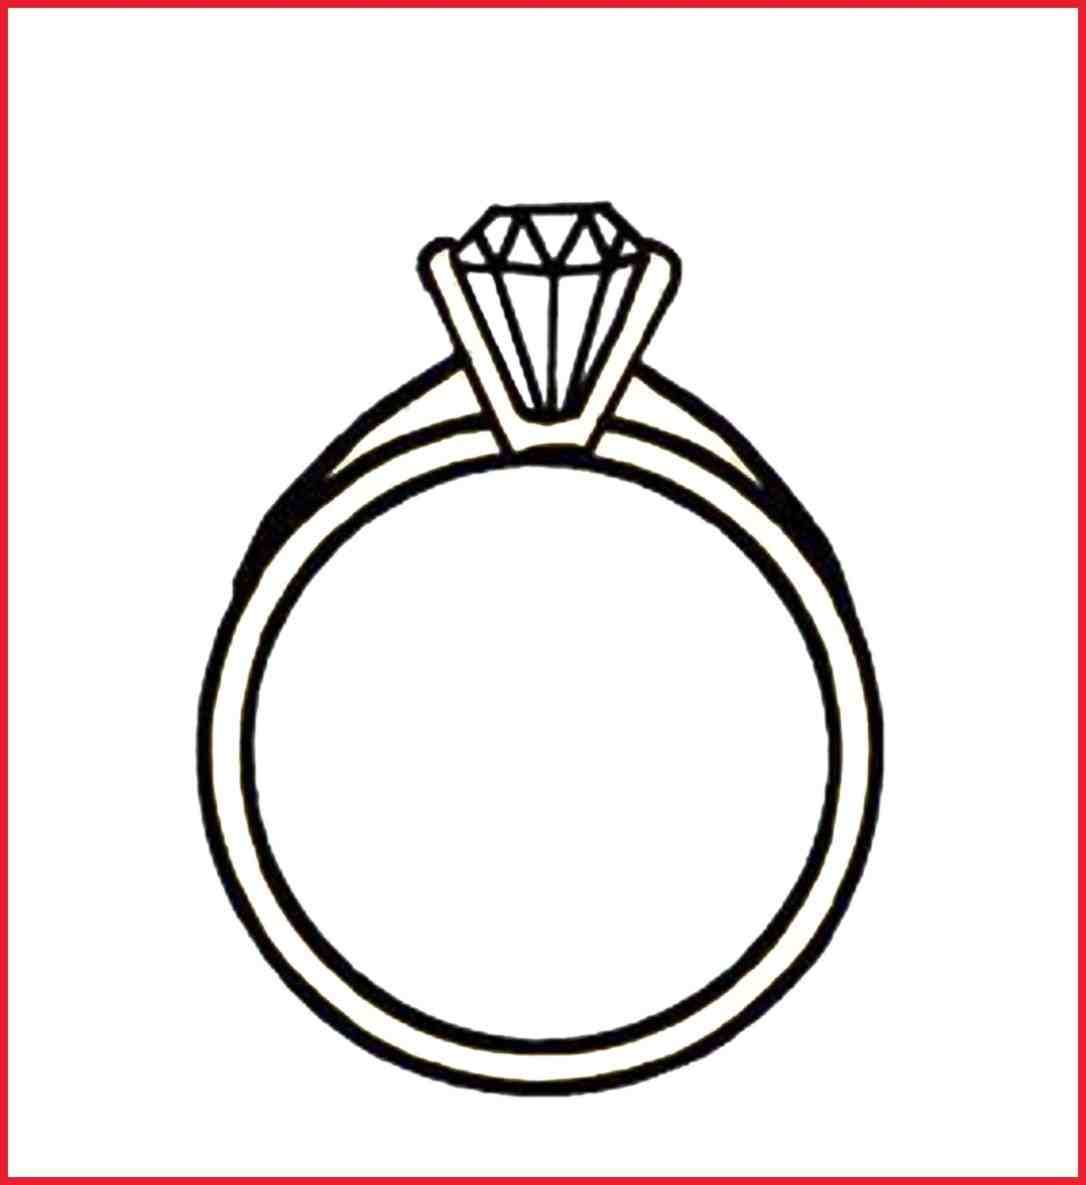 Engagement ring clipart with tranlucent background vector transparent stock wedding clipart transparent background | Weddings | Engagement ring ... vector transparent stock